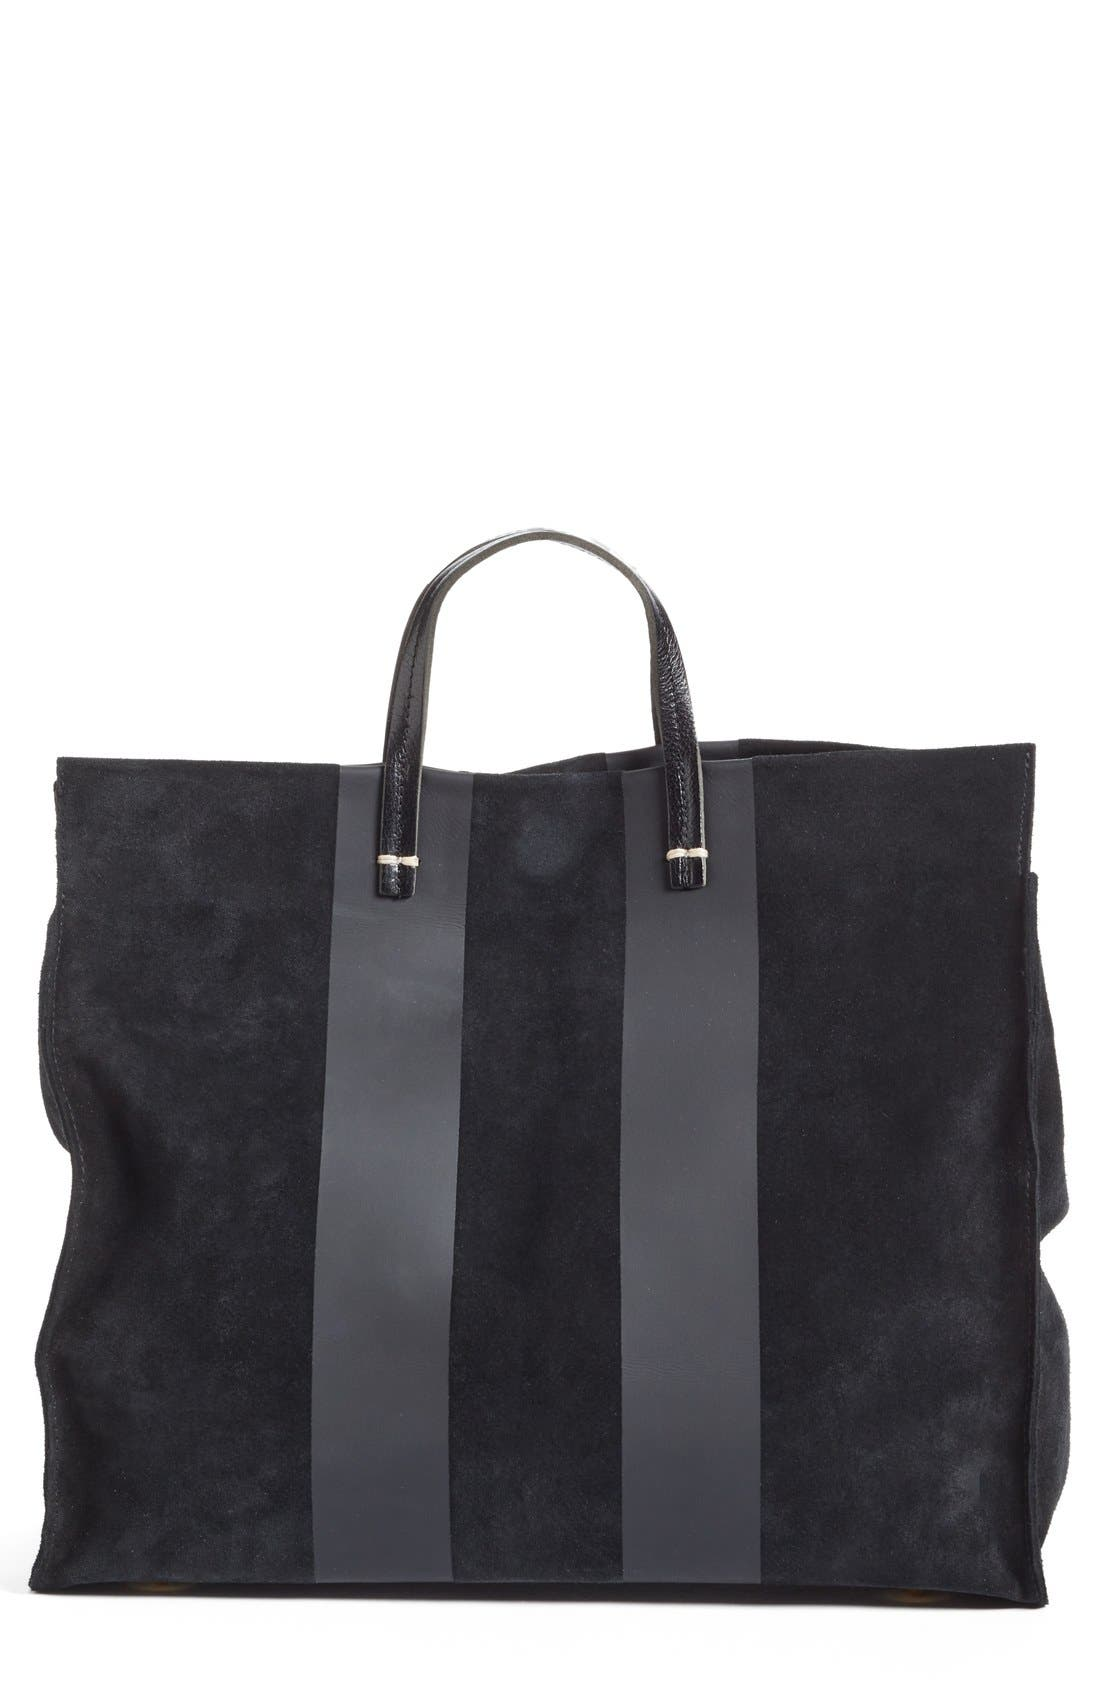 Alternate Image 1 Selected - Clare V. 'Simple' Stripe Leather Tote